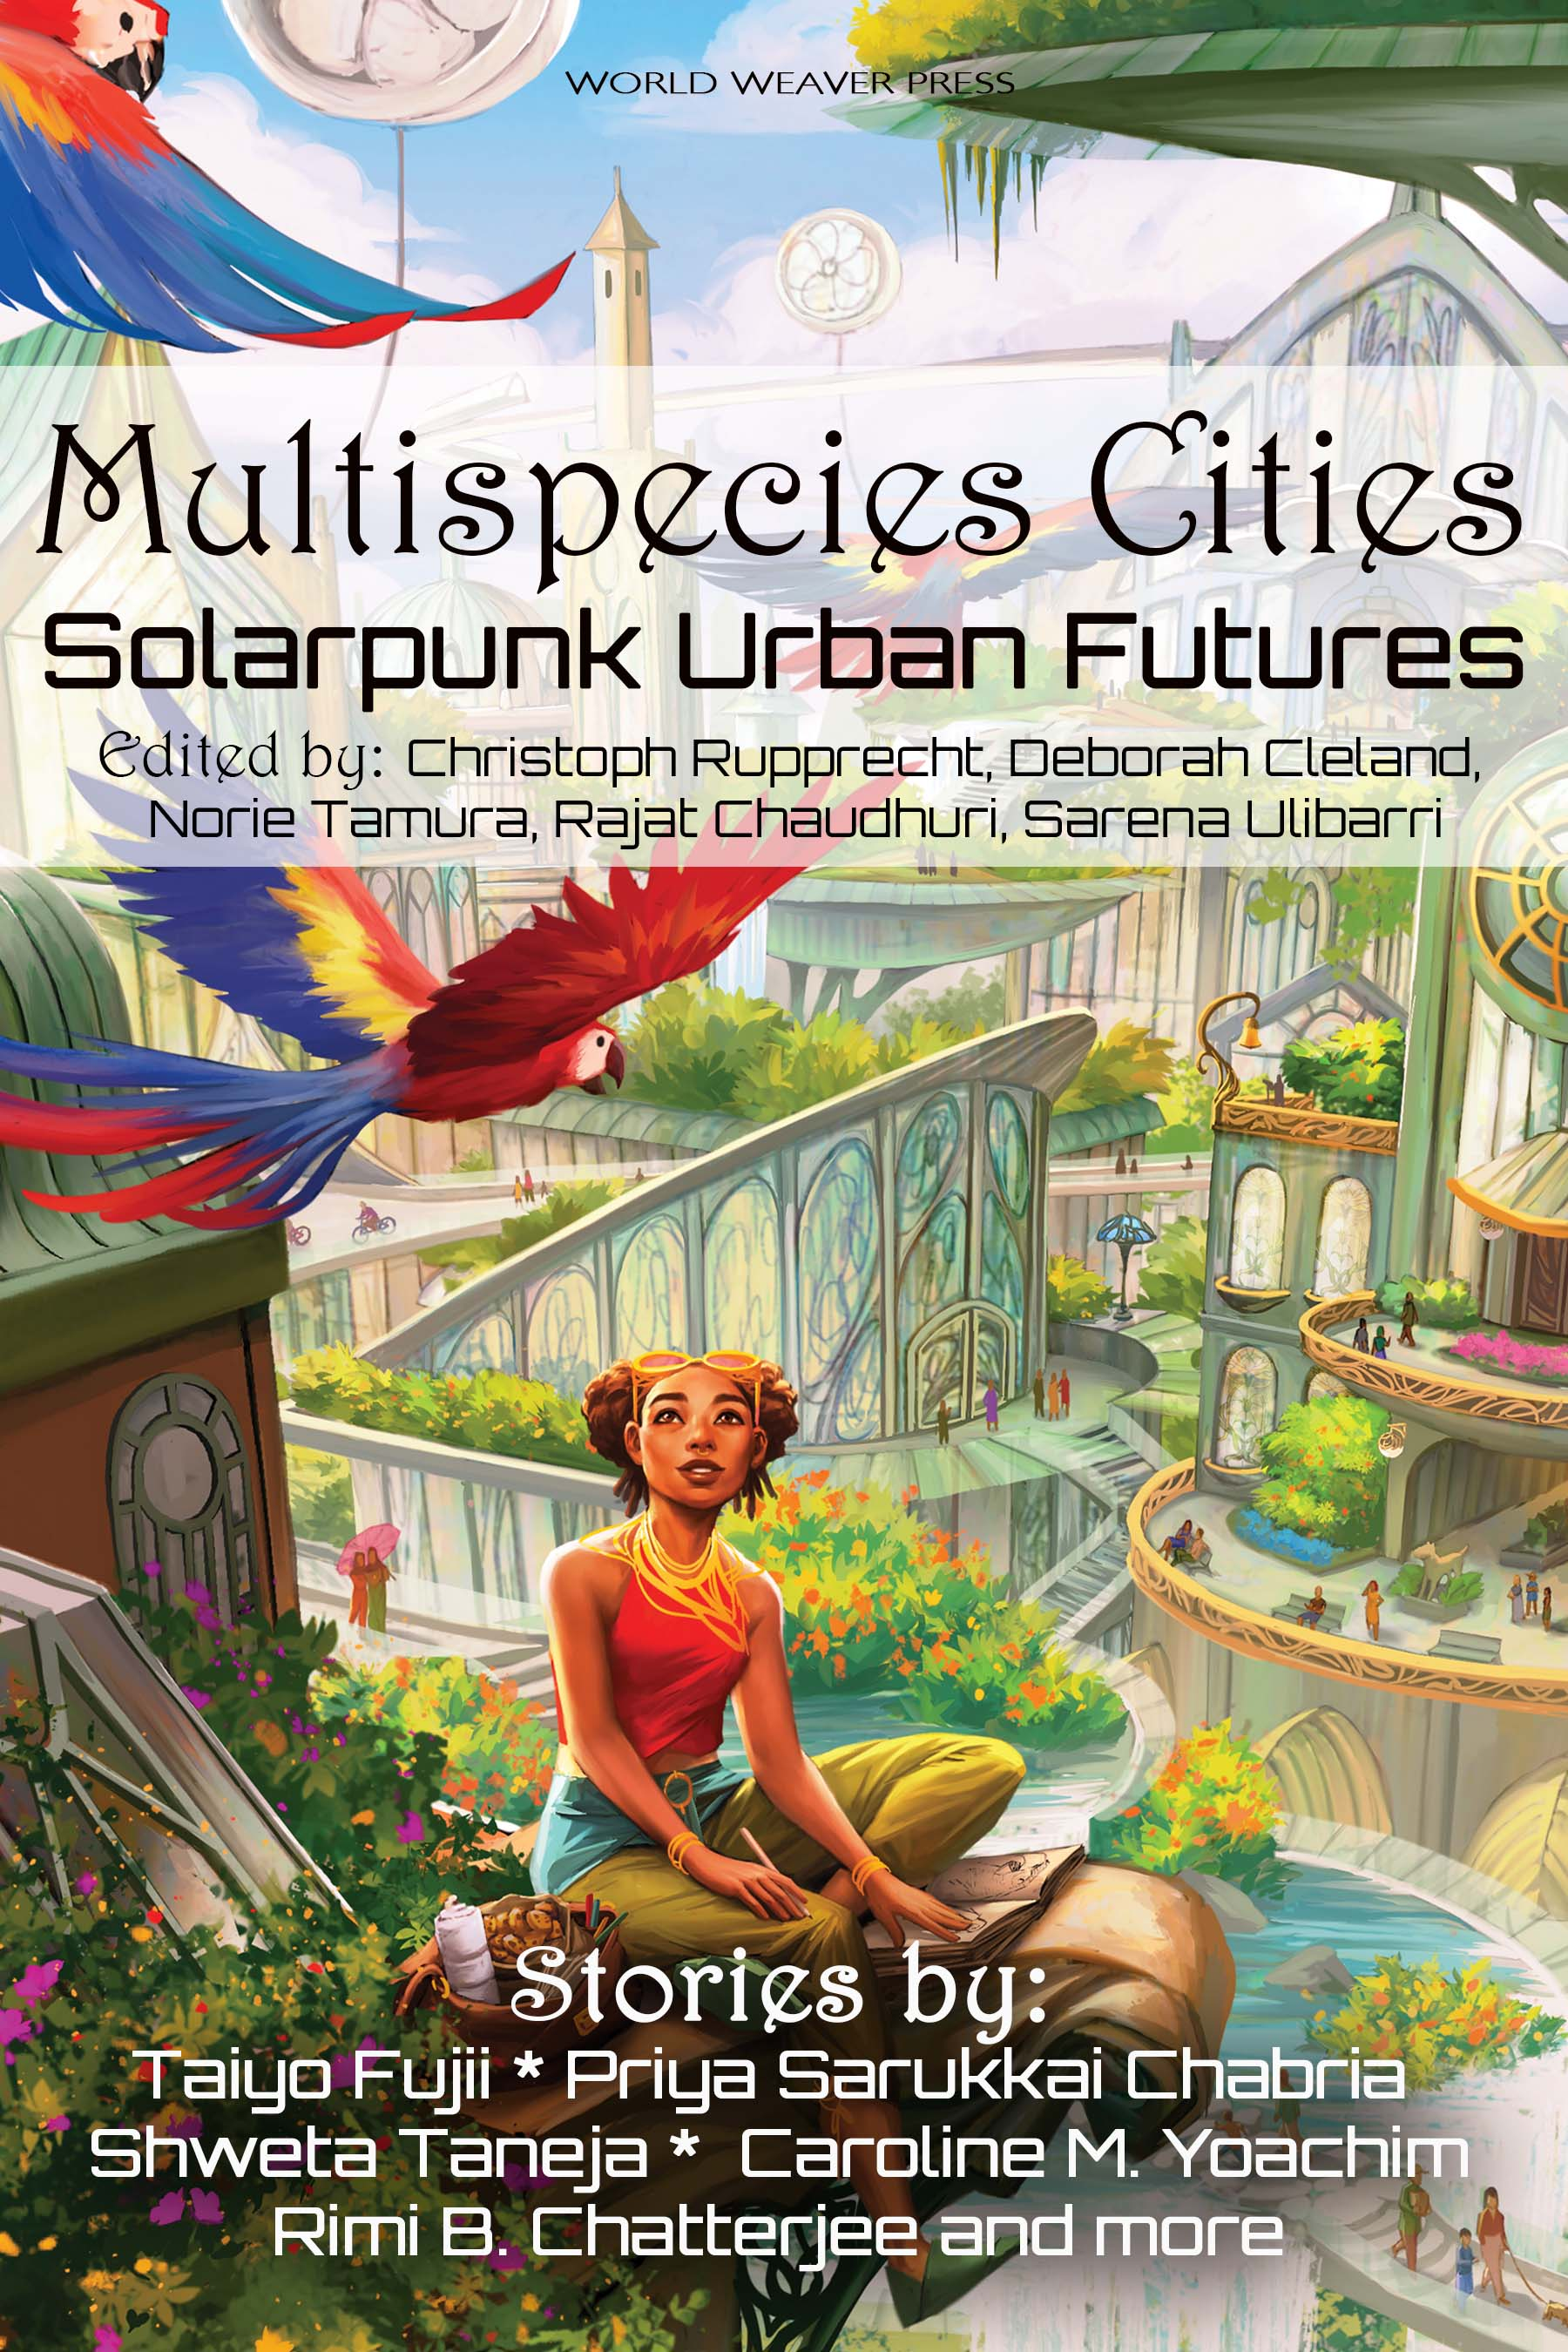 Cover image of Multispecies Cities book with illustation and title